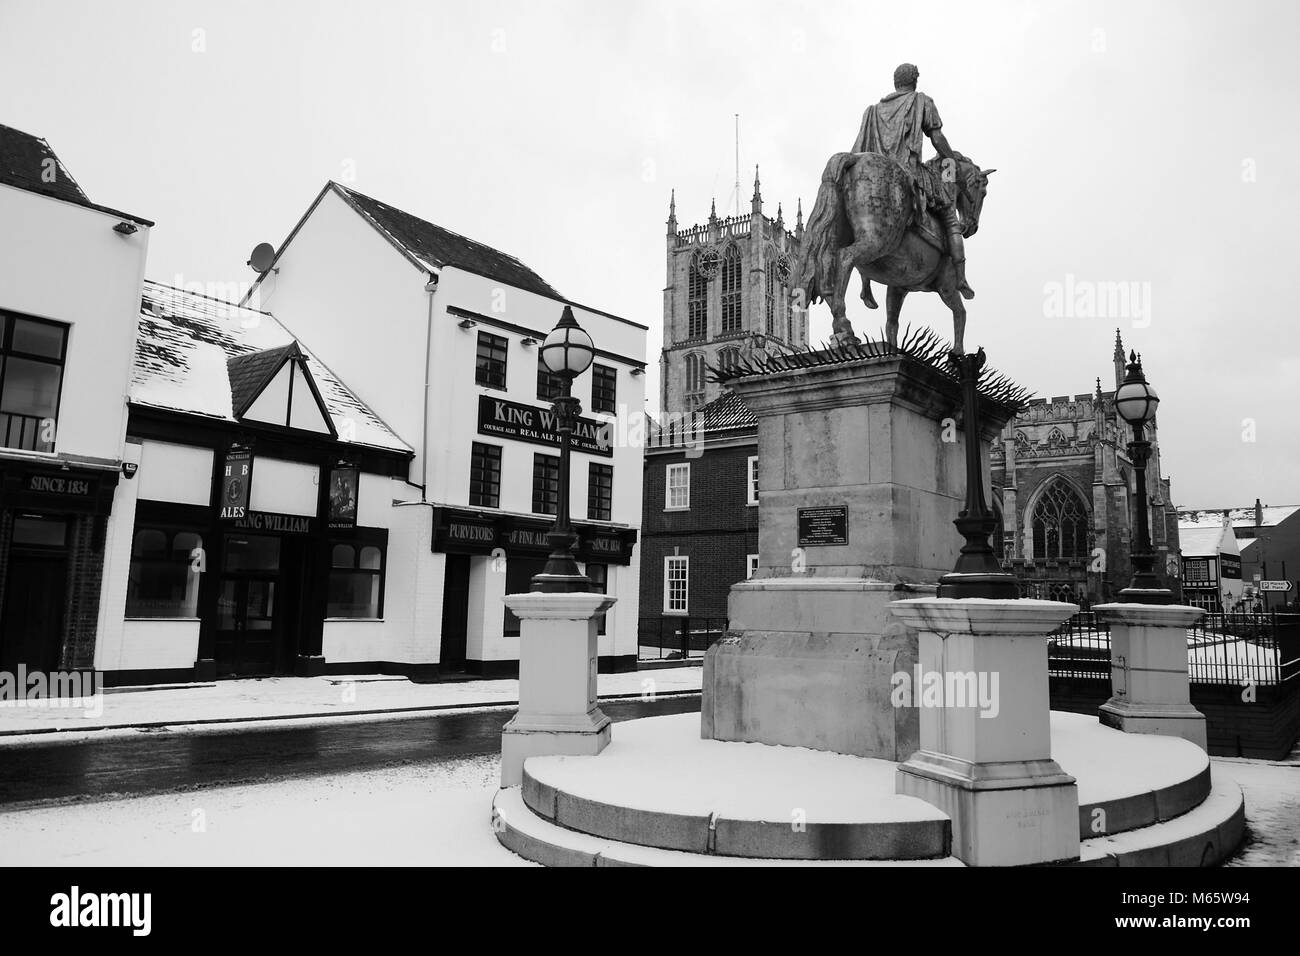 King billy statue, Market Place, Kingston Upon Hull - Stock Image